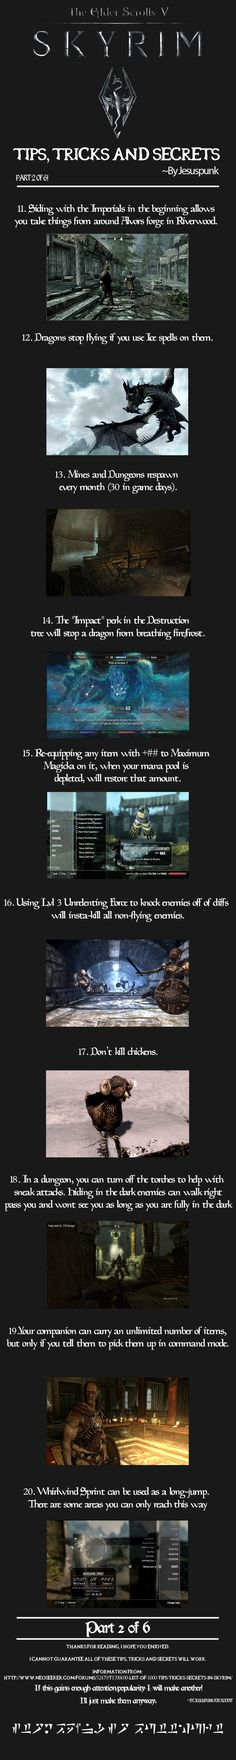 Skyrim - Tips, Tricks and Secrets! {Part 2} - Imgur